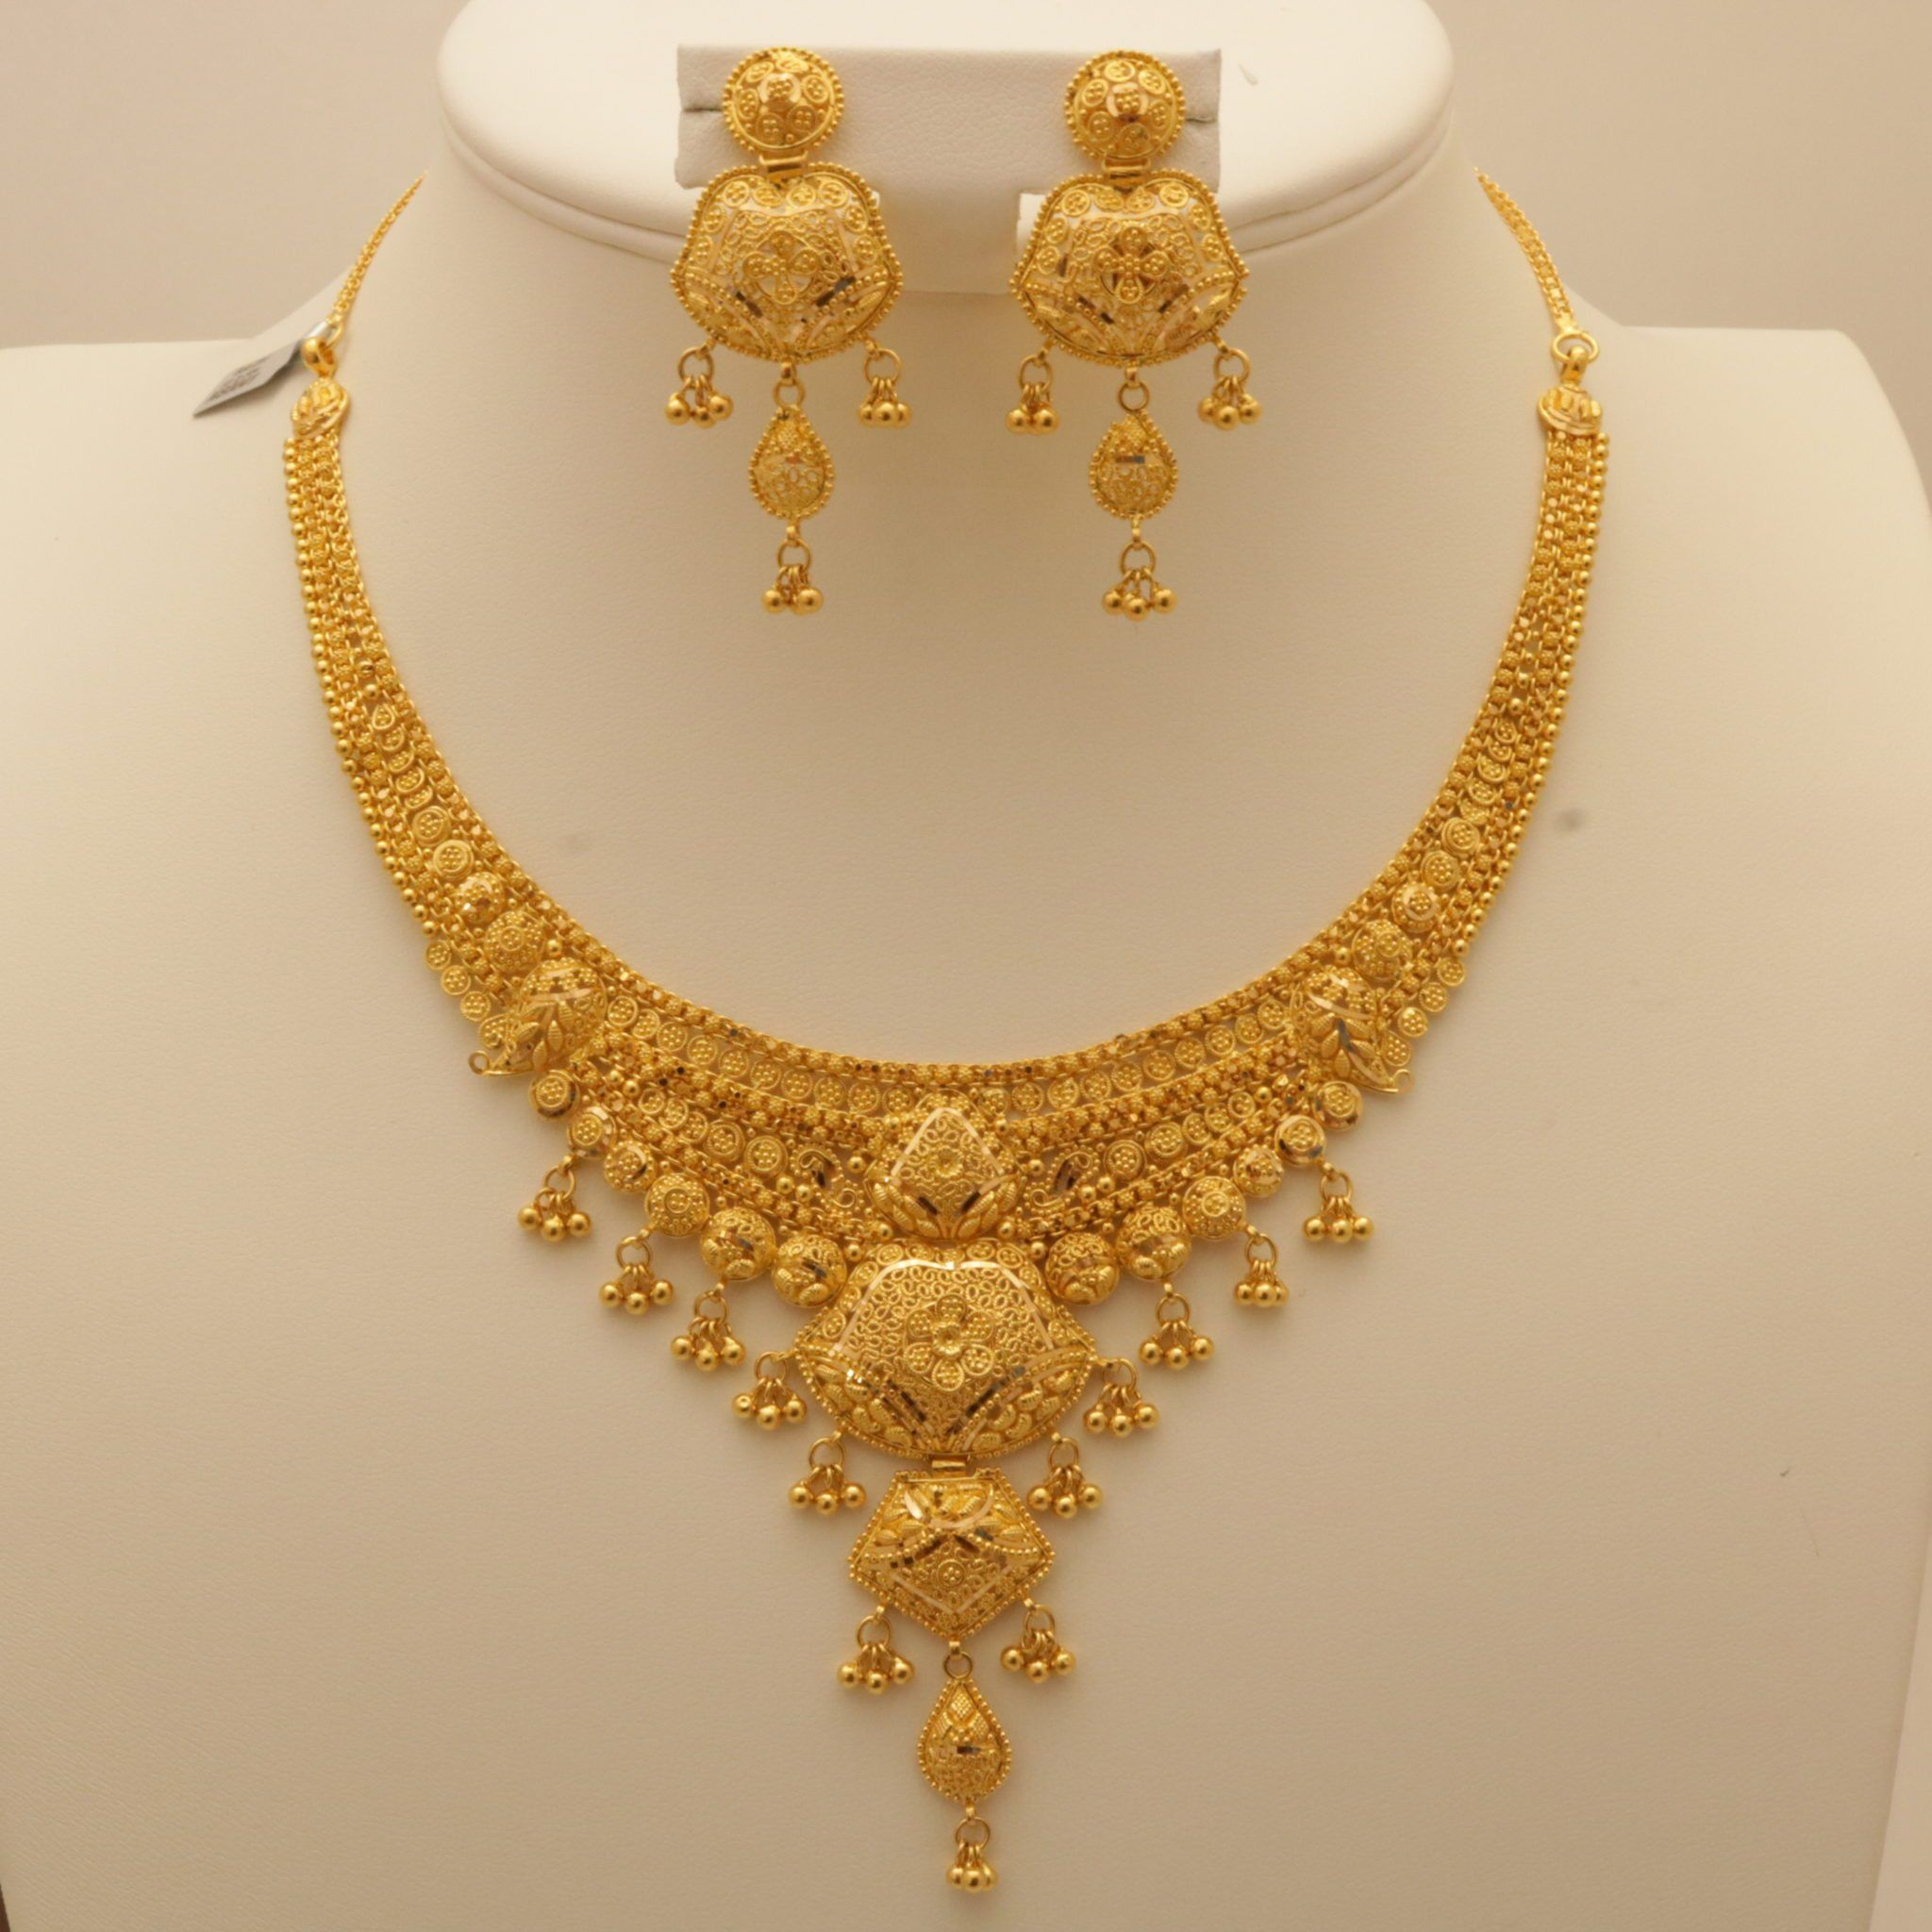 Indian Gold Jewellery Necklace Designs With Price: Indian Gold Jewellery Necklace Sets - Google Search